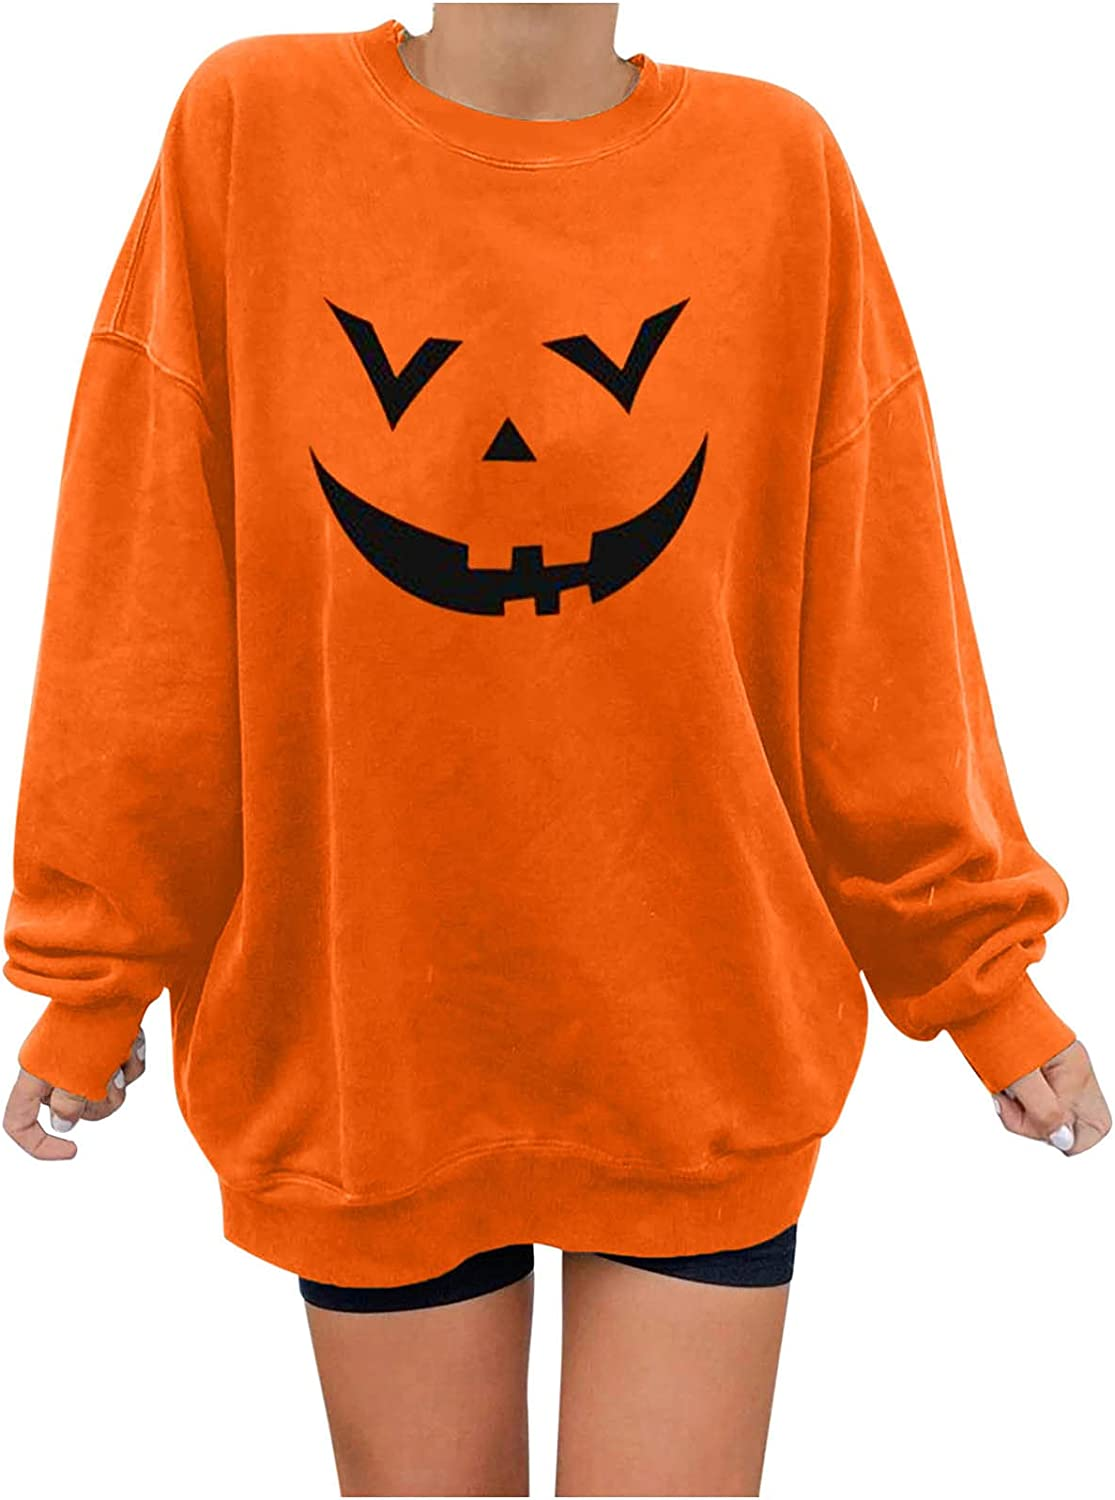 Halloween Sweatshirts for Women Plus Size Long Sleeve Pullover Loose O Neck Blouse Fashion Print Fall Tops